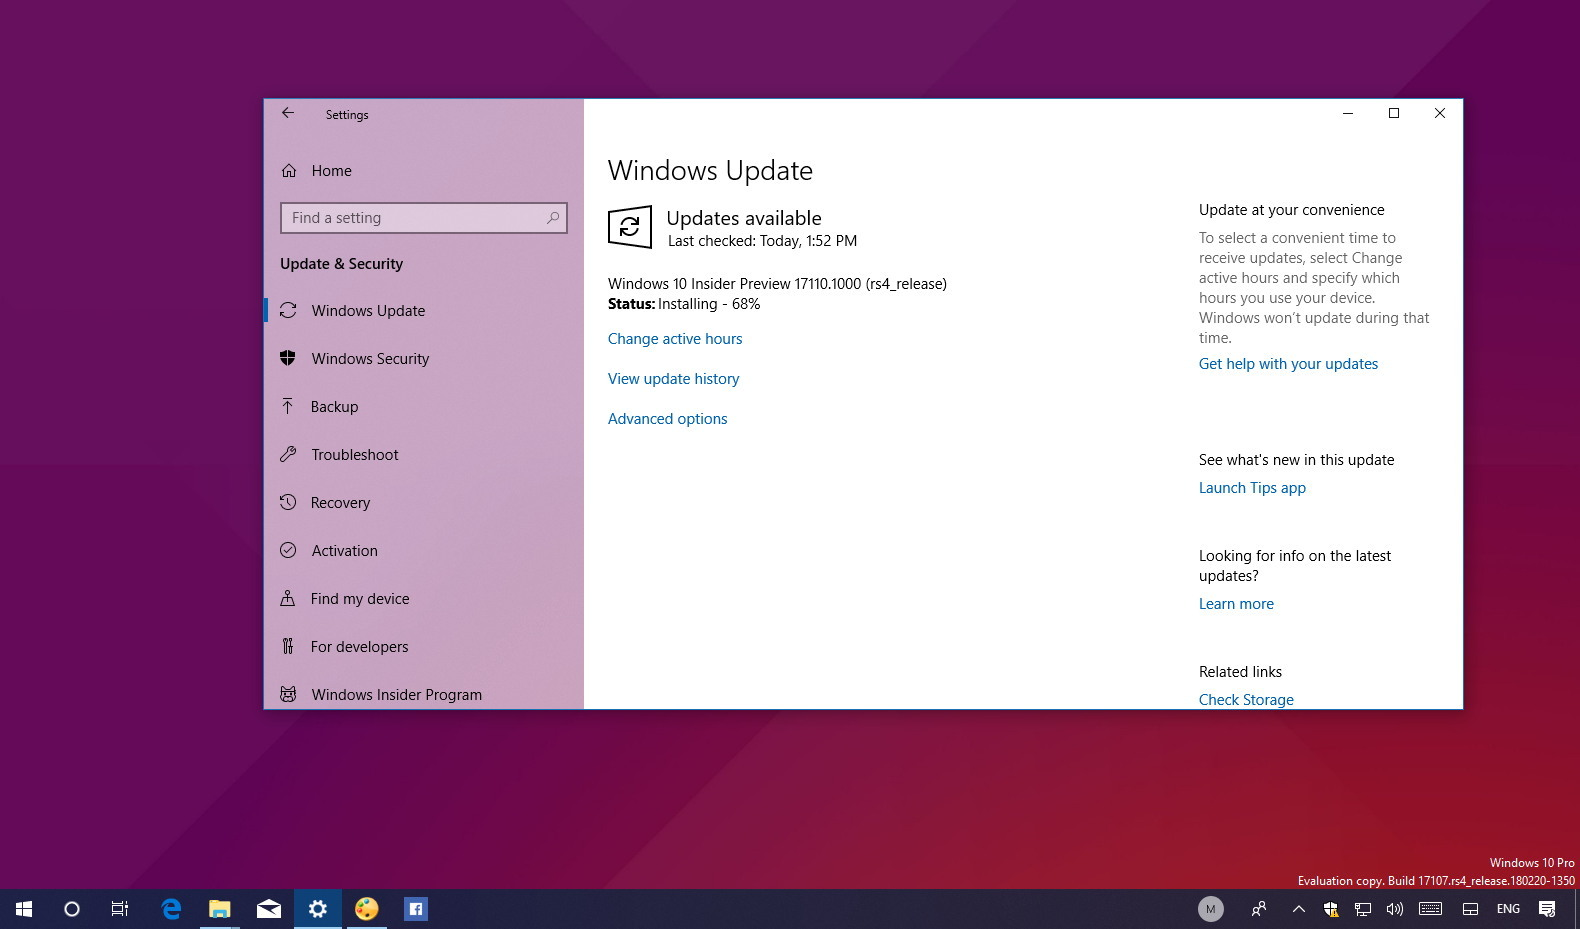 Windows 10 build 17110